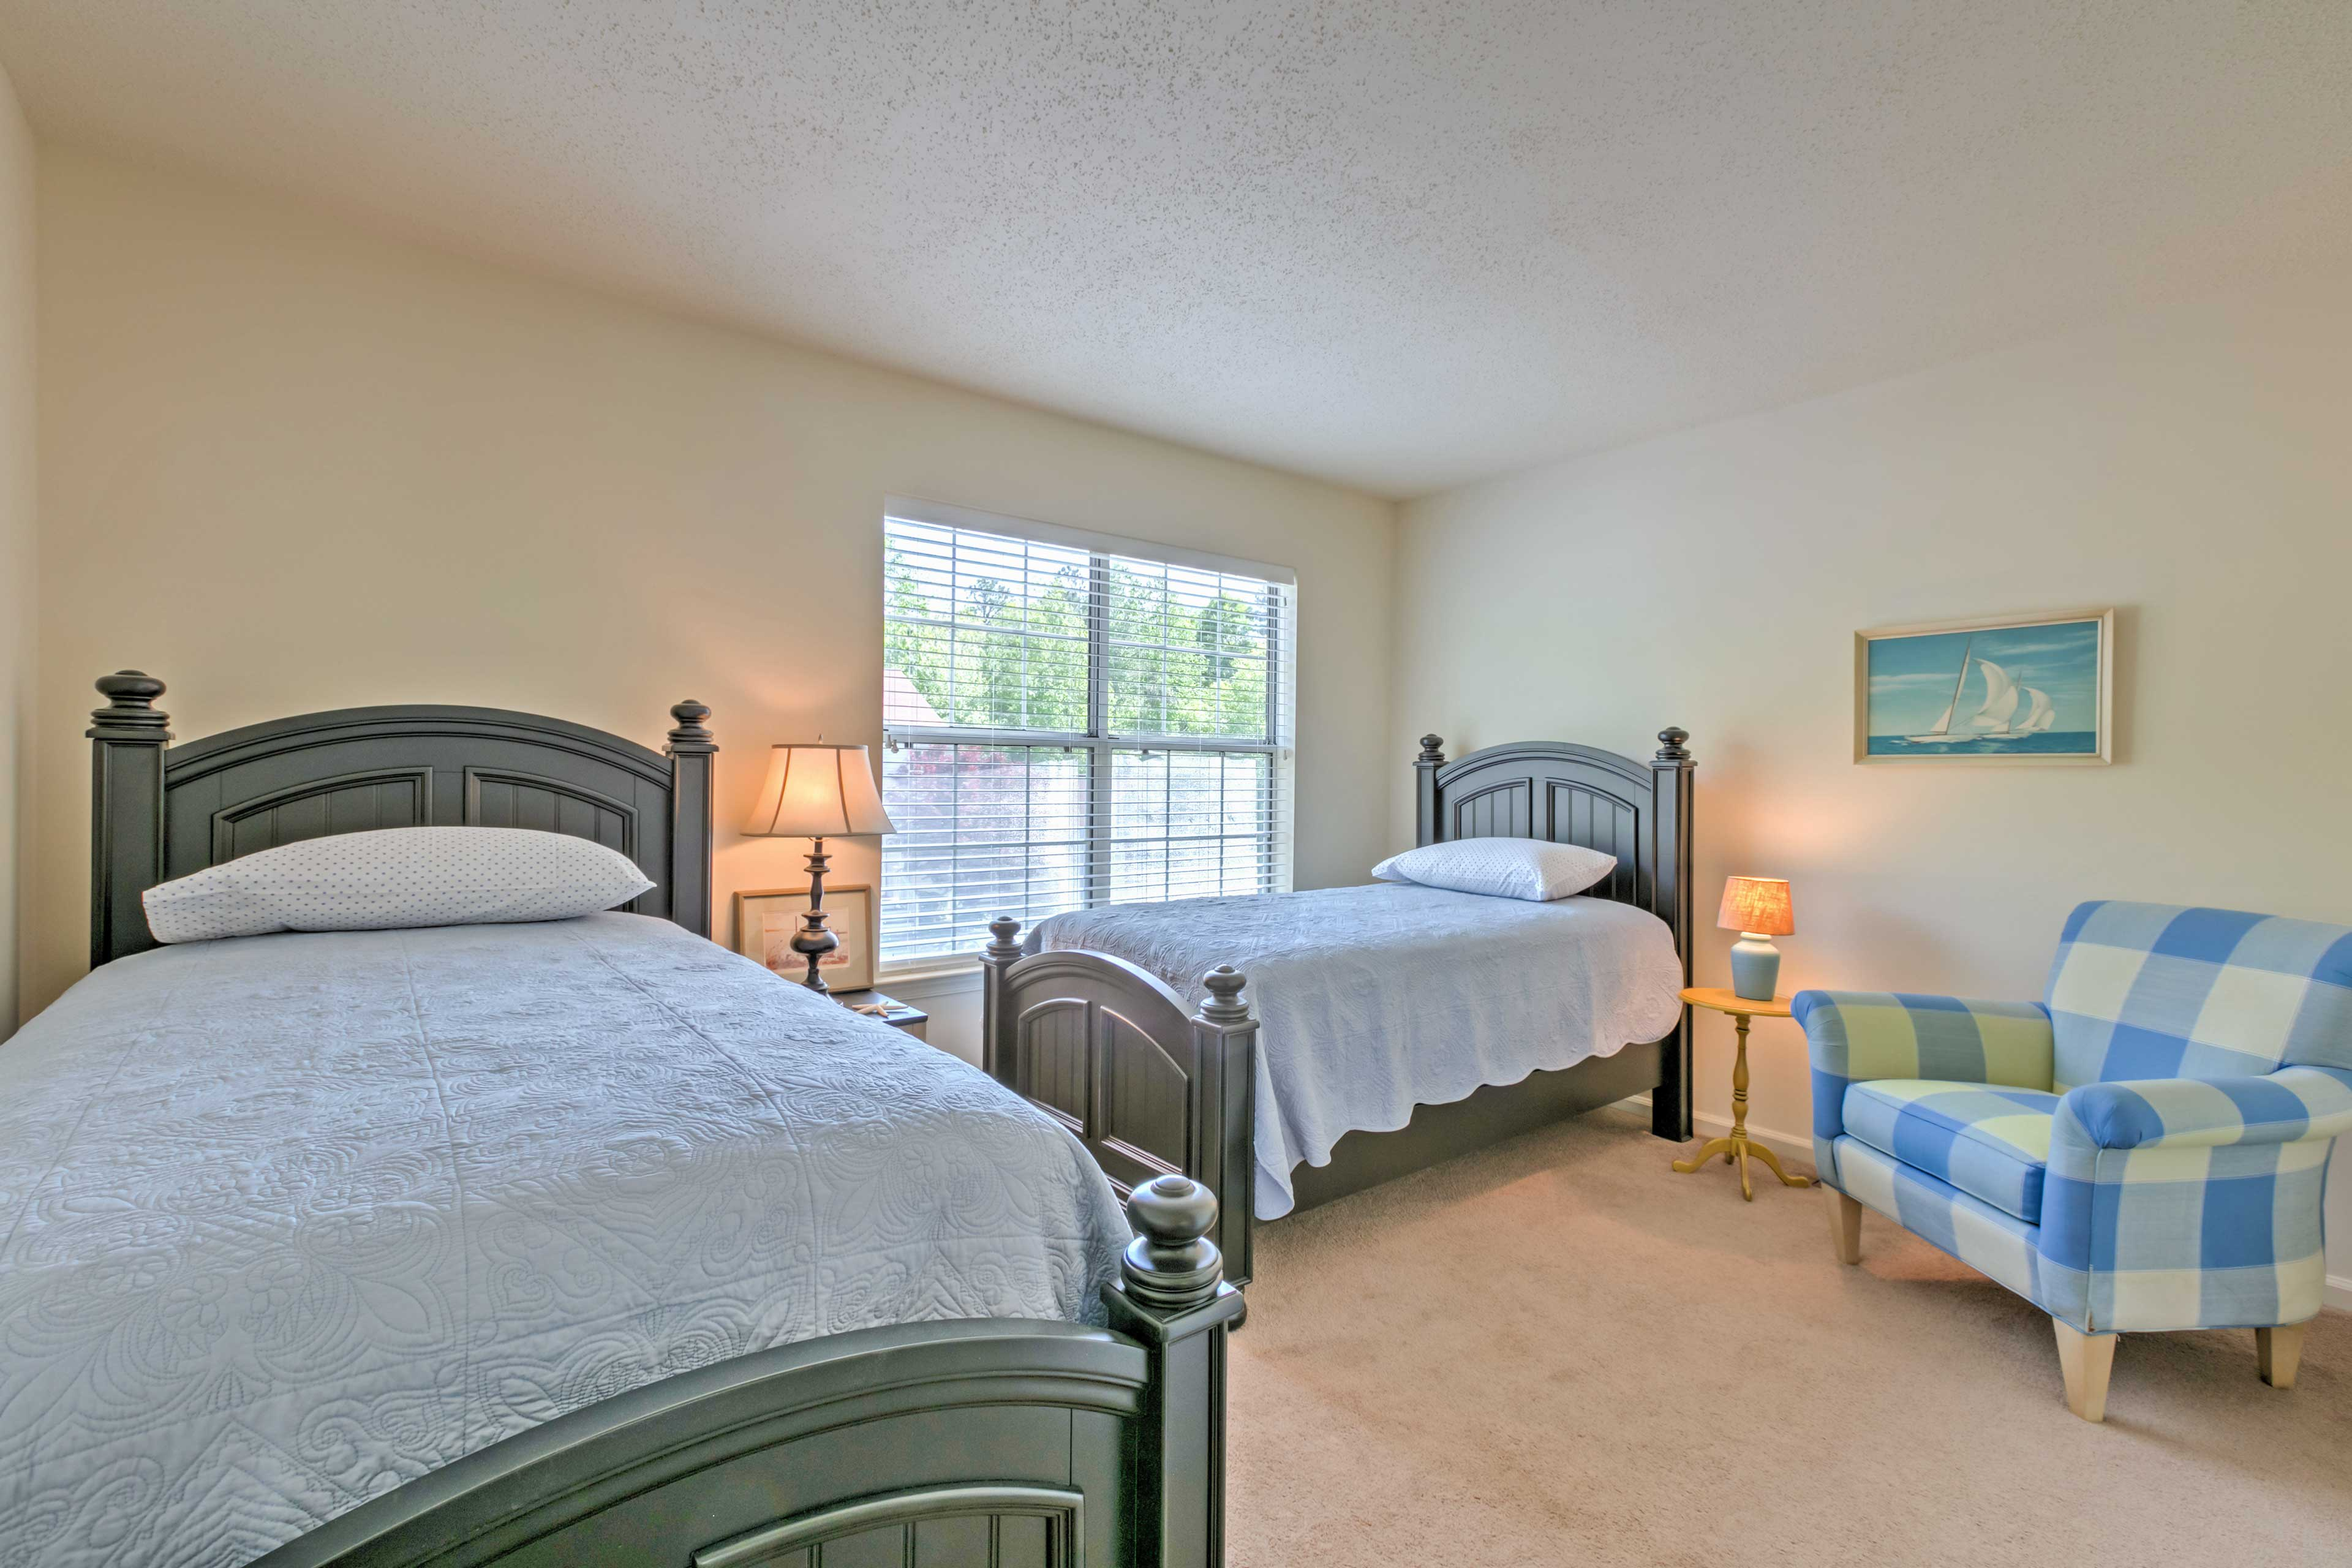 This next room contains 2 twin-sized beds.